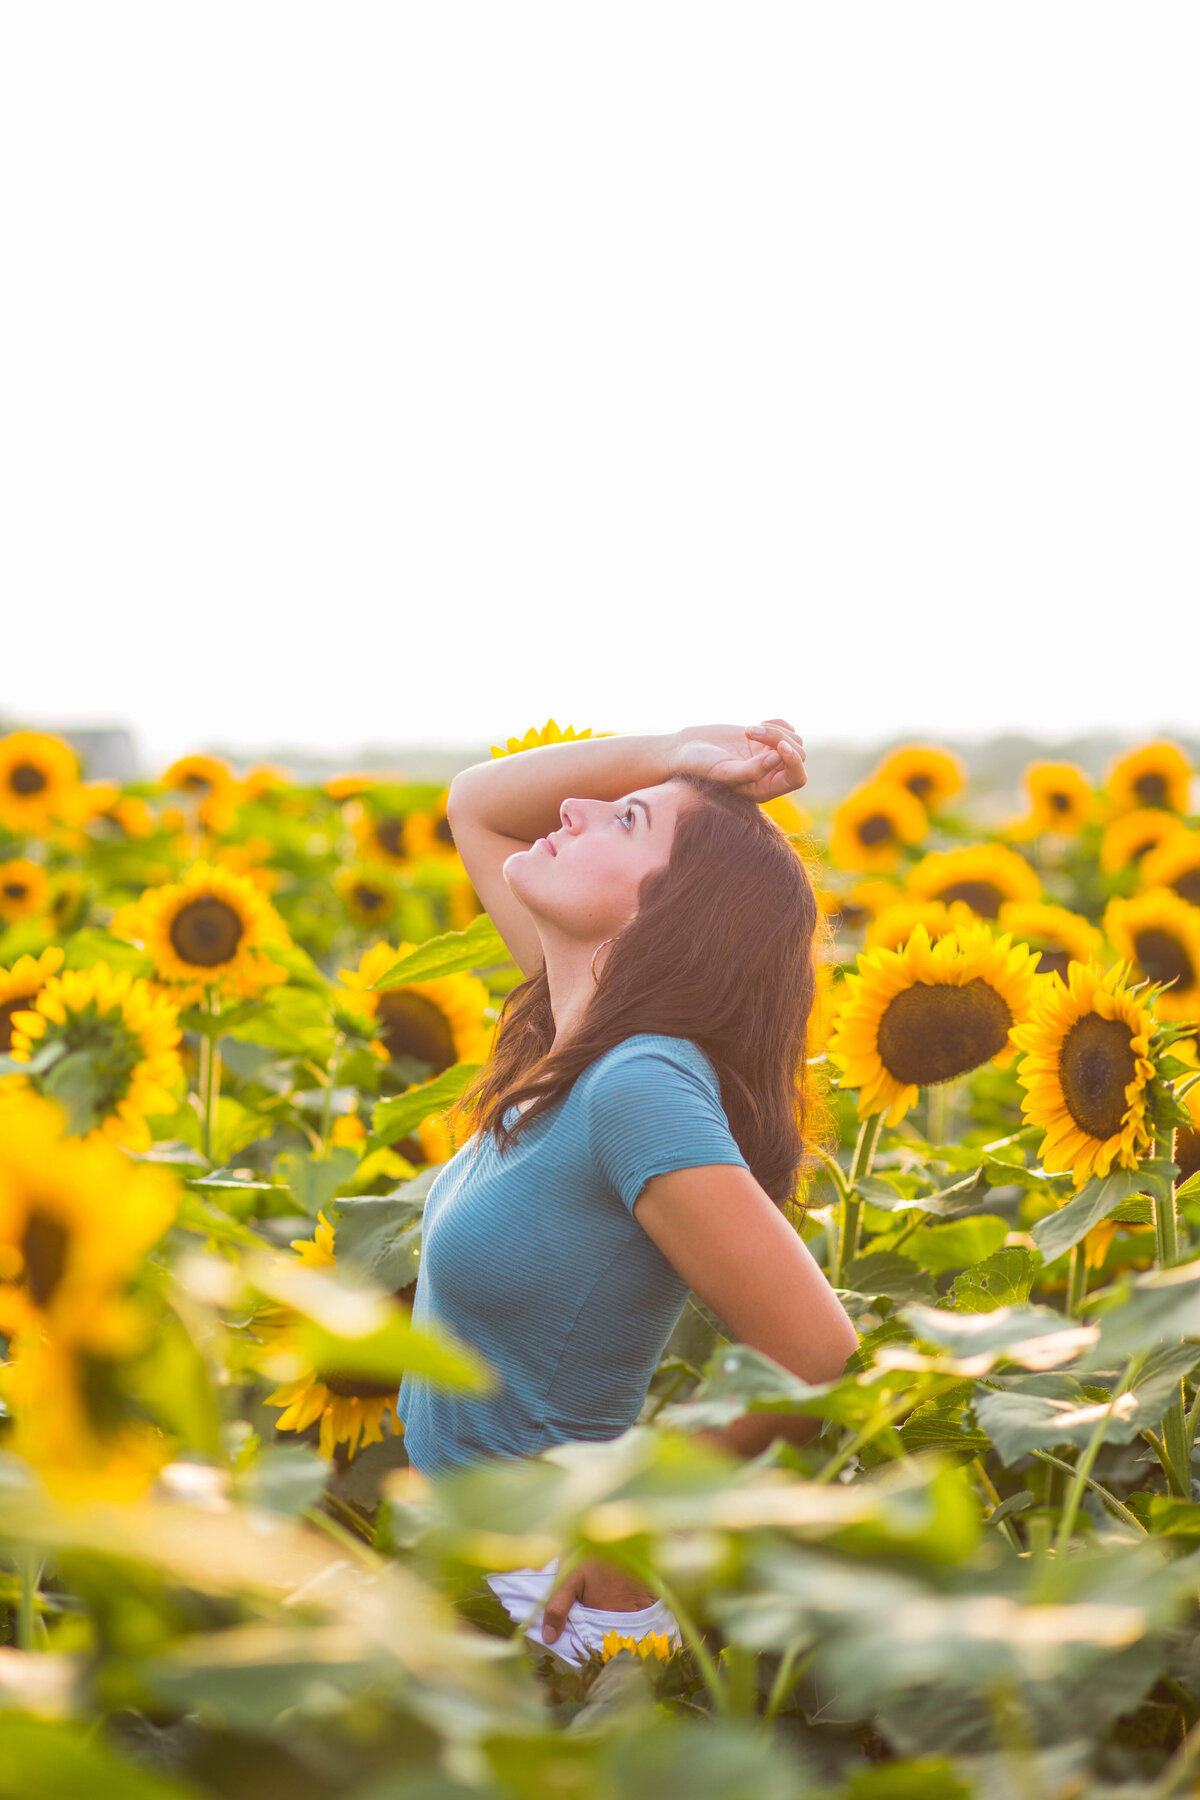 Victor-New-York-Teen-pictures-sunflowers-Carrie-Eigbrett-Photography-3003